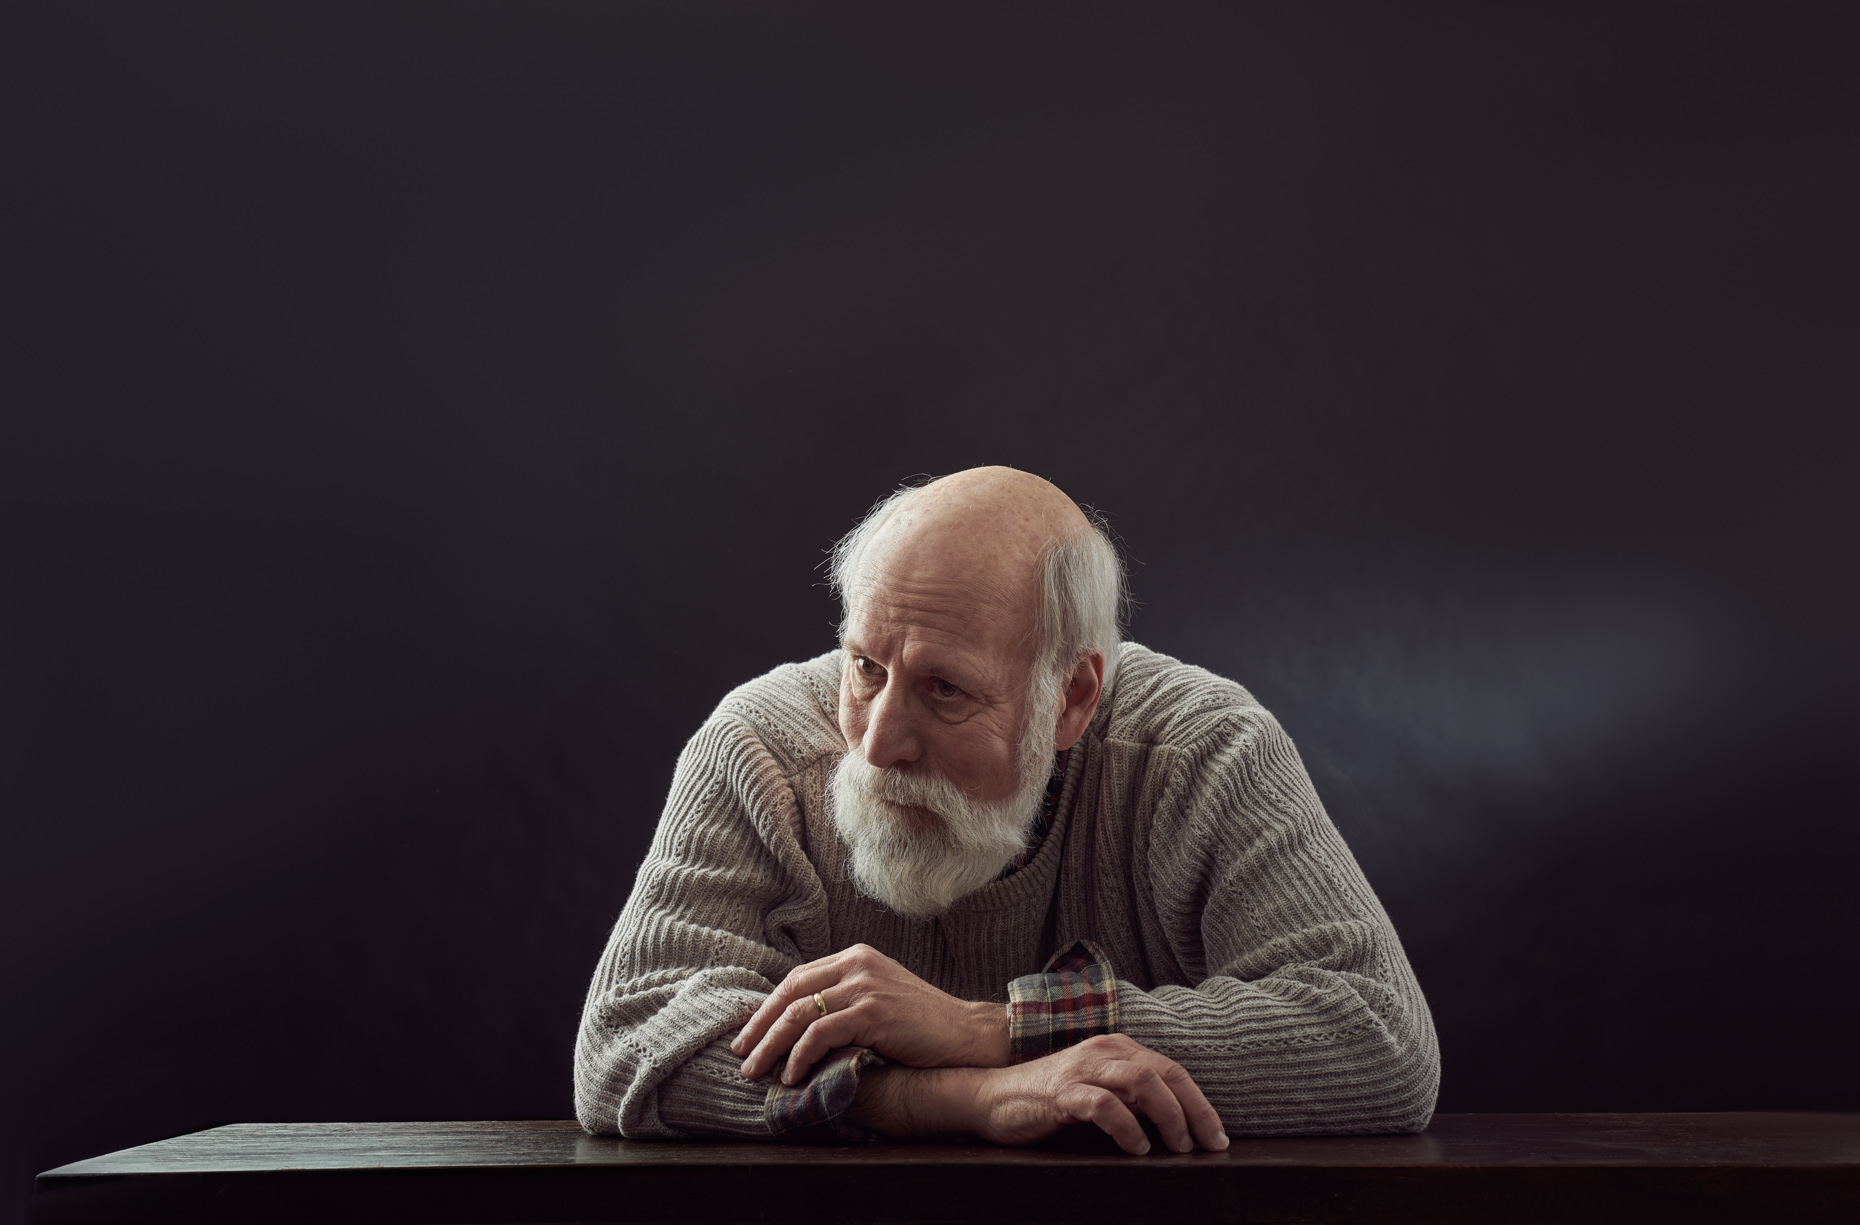 Bearded Man in Sweater at table